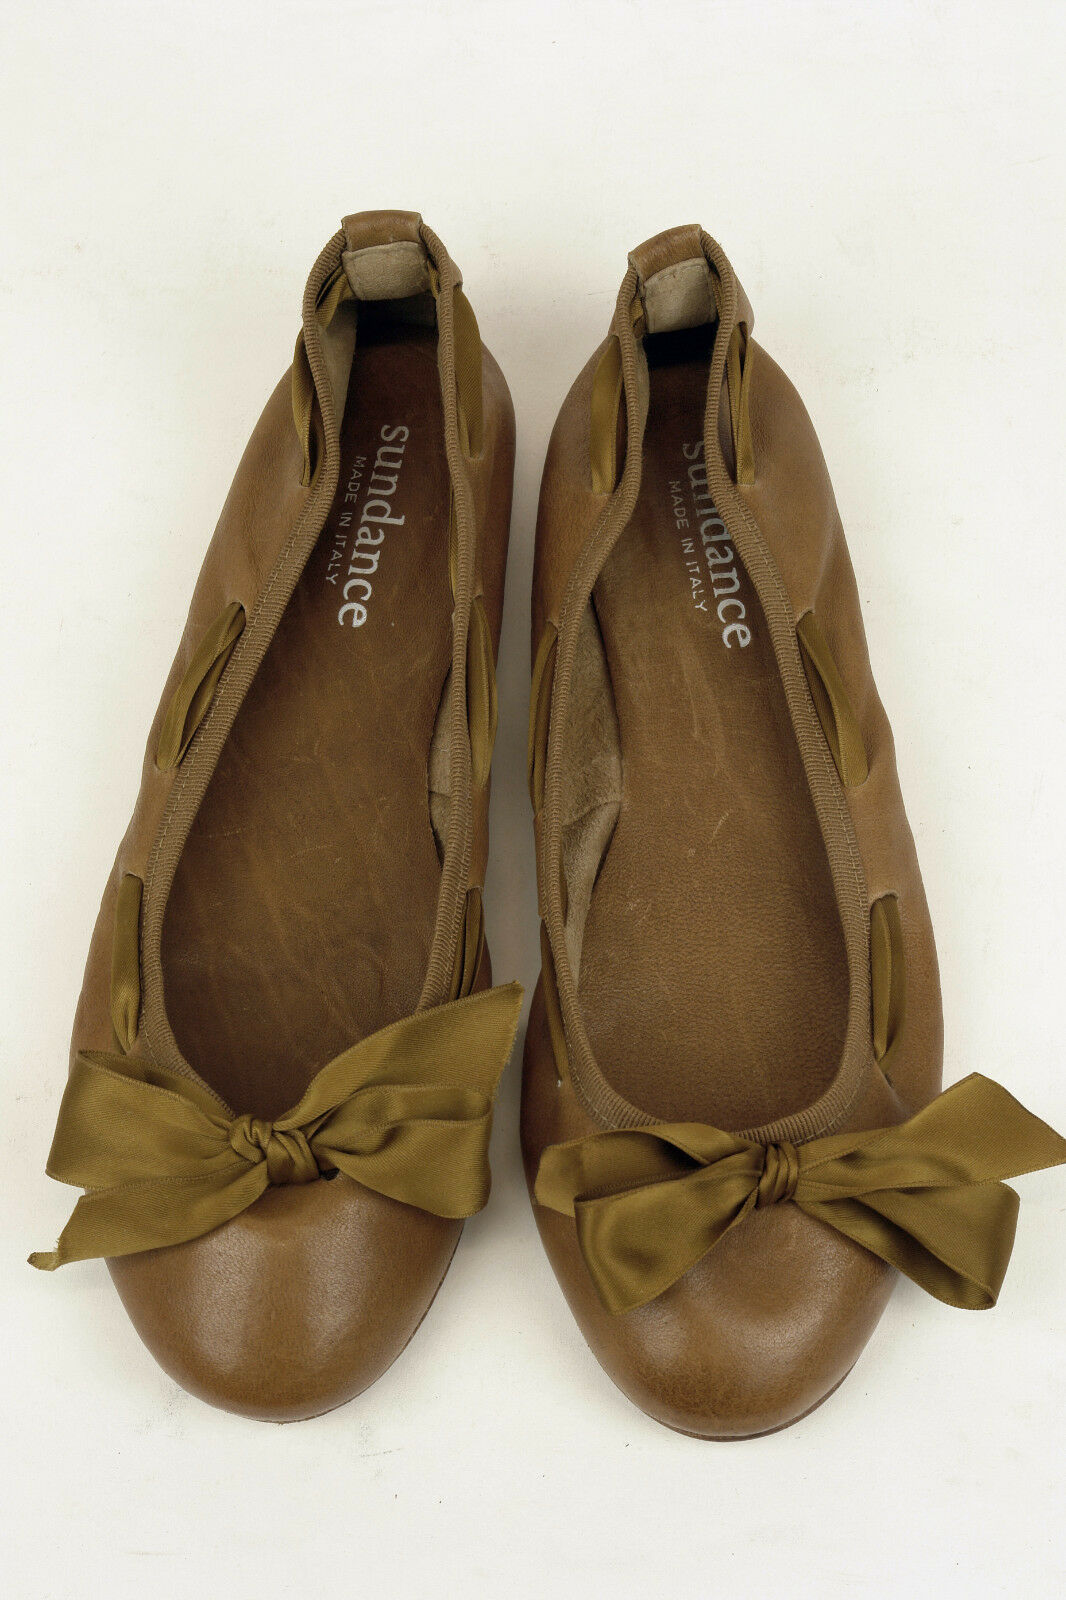 Sundance / IN ITALY / LUXURY BALLET FLAT IN / A SOFT TAN NAPA / 40 / SUPERB 6e26c4